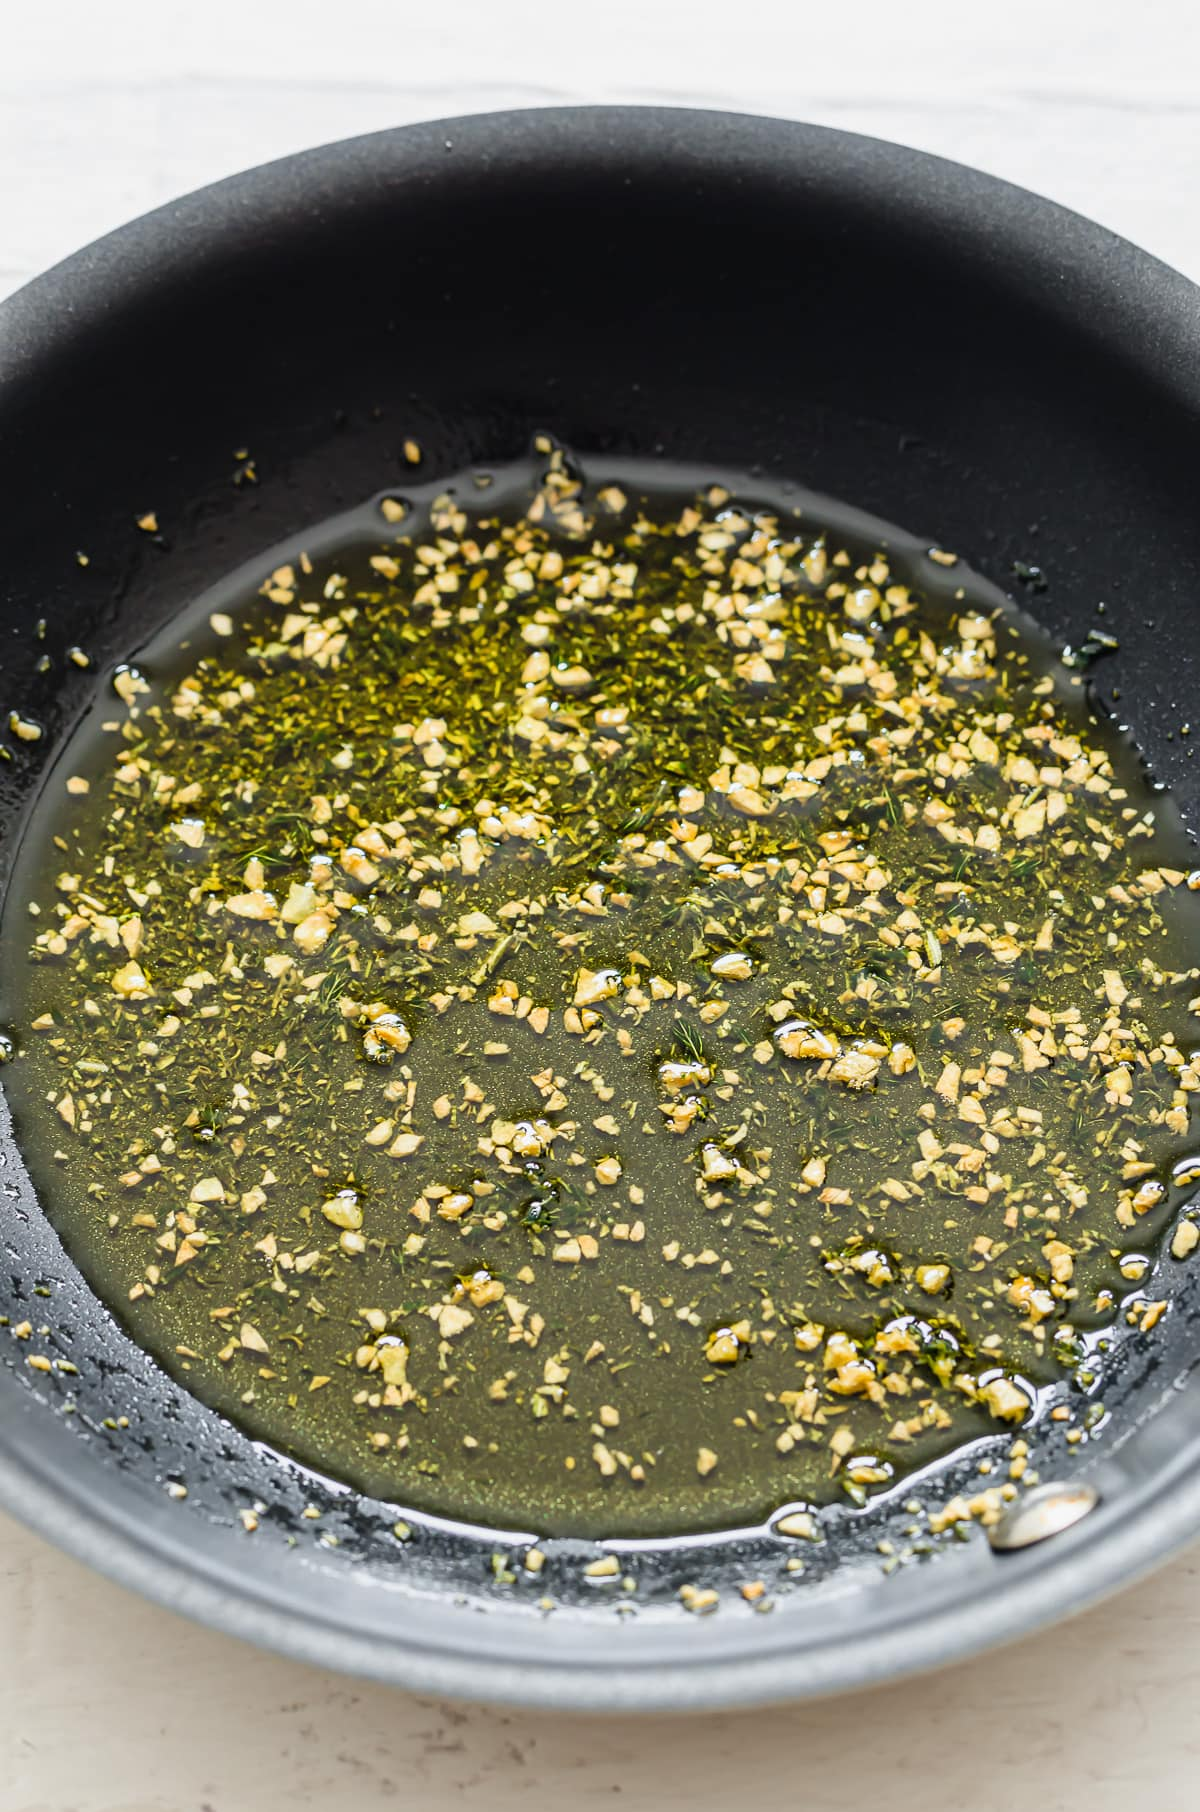 A skillet with olive oil, chopped garlic, and herbs.